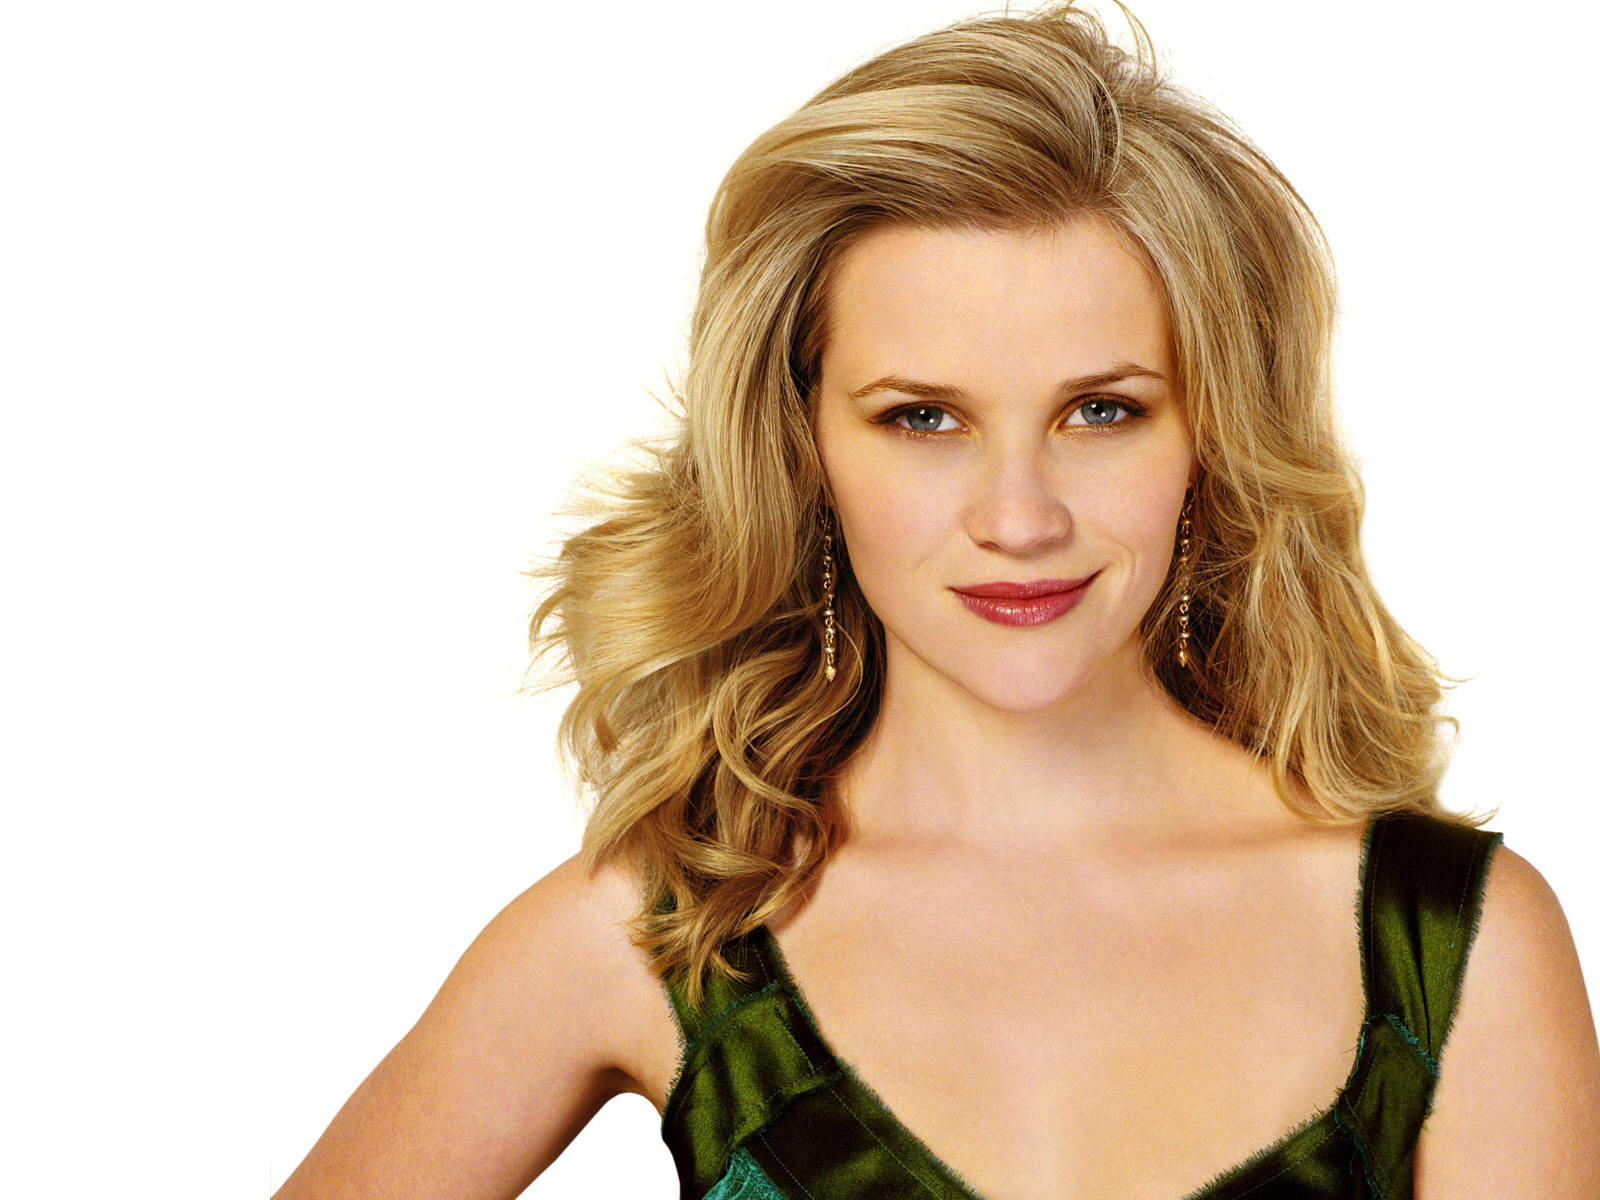 Reese Witherspoon Sexy And Hot Hd Wallpapers - All Hd -1567